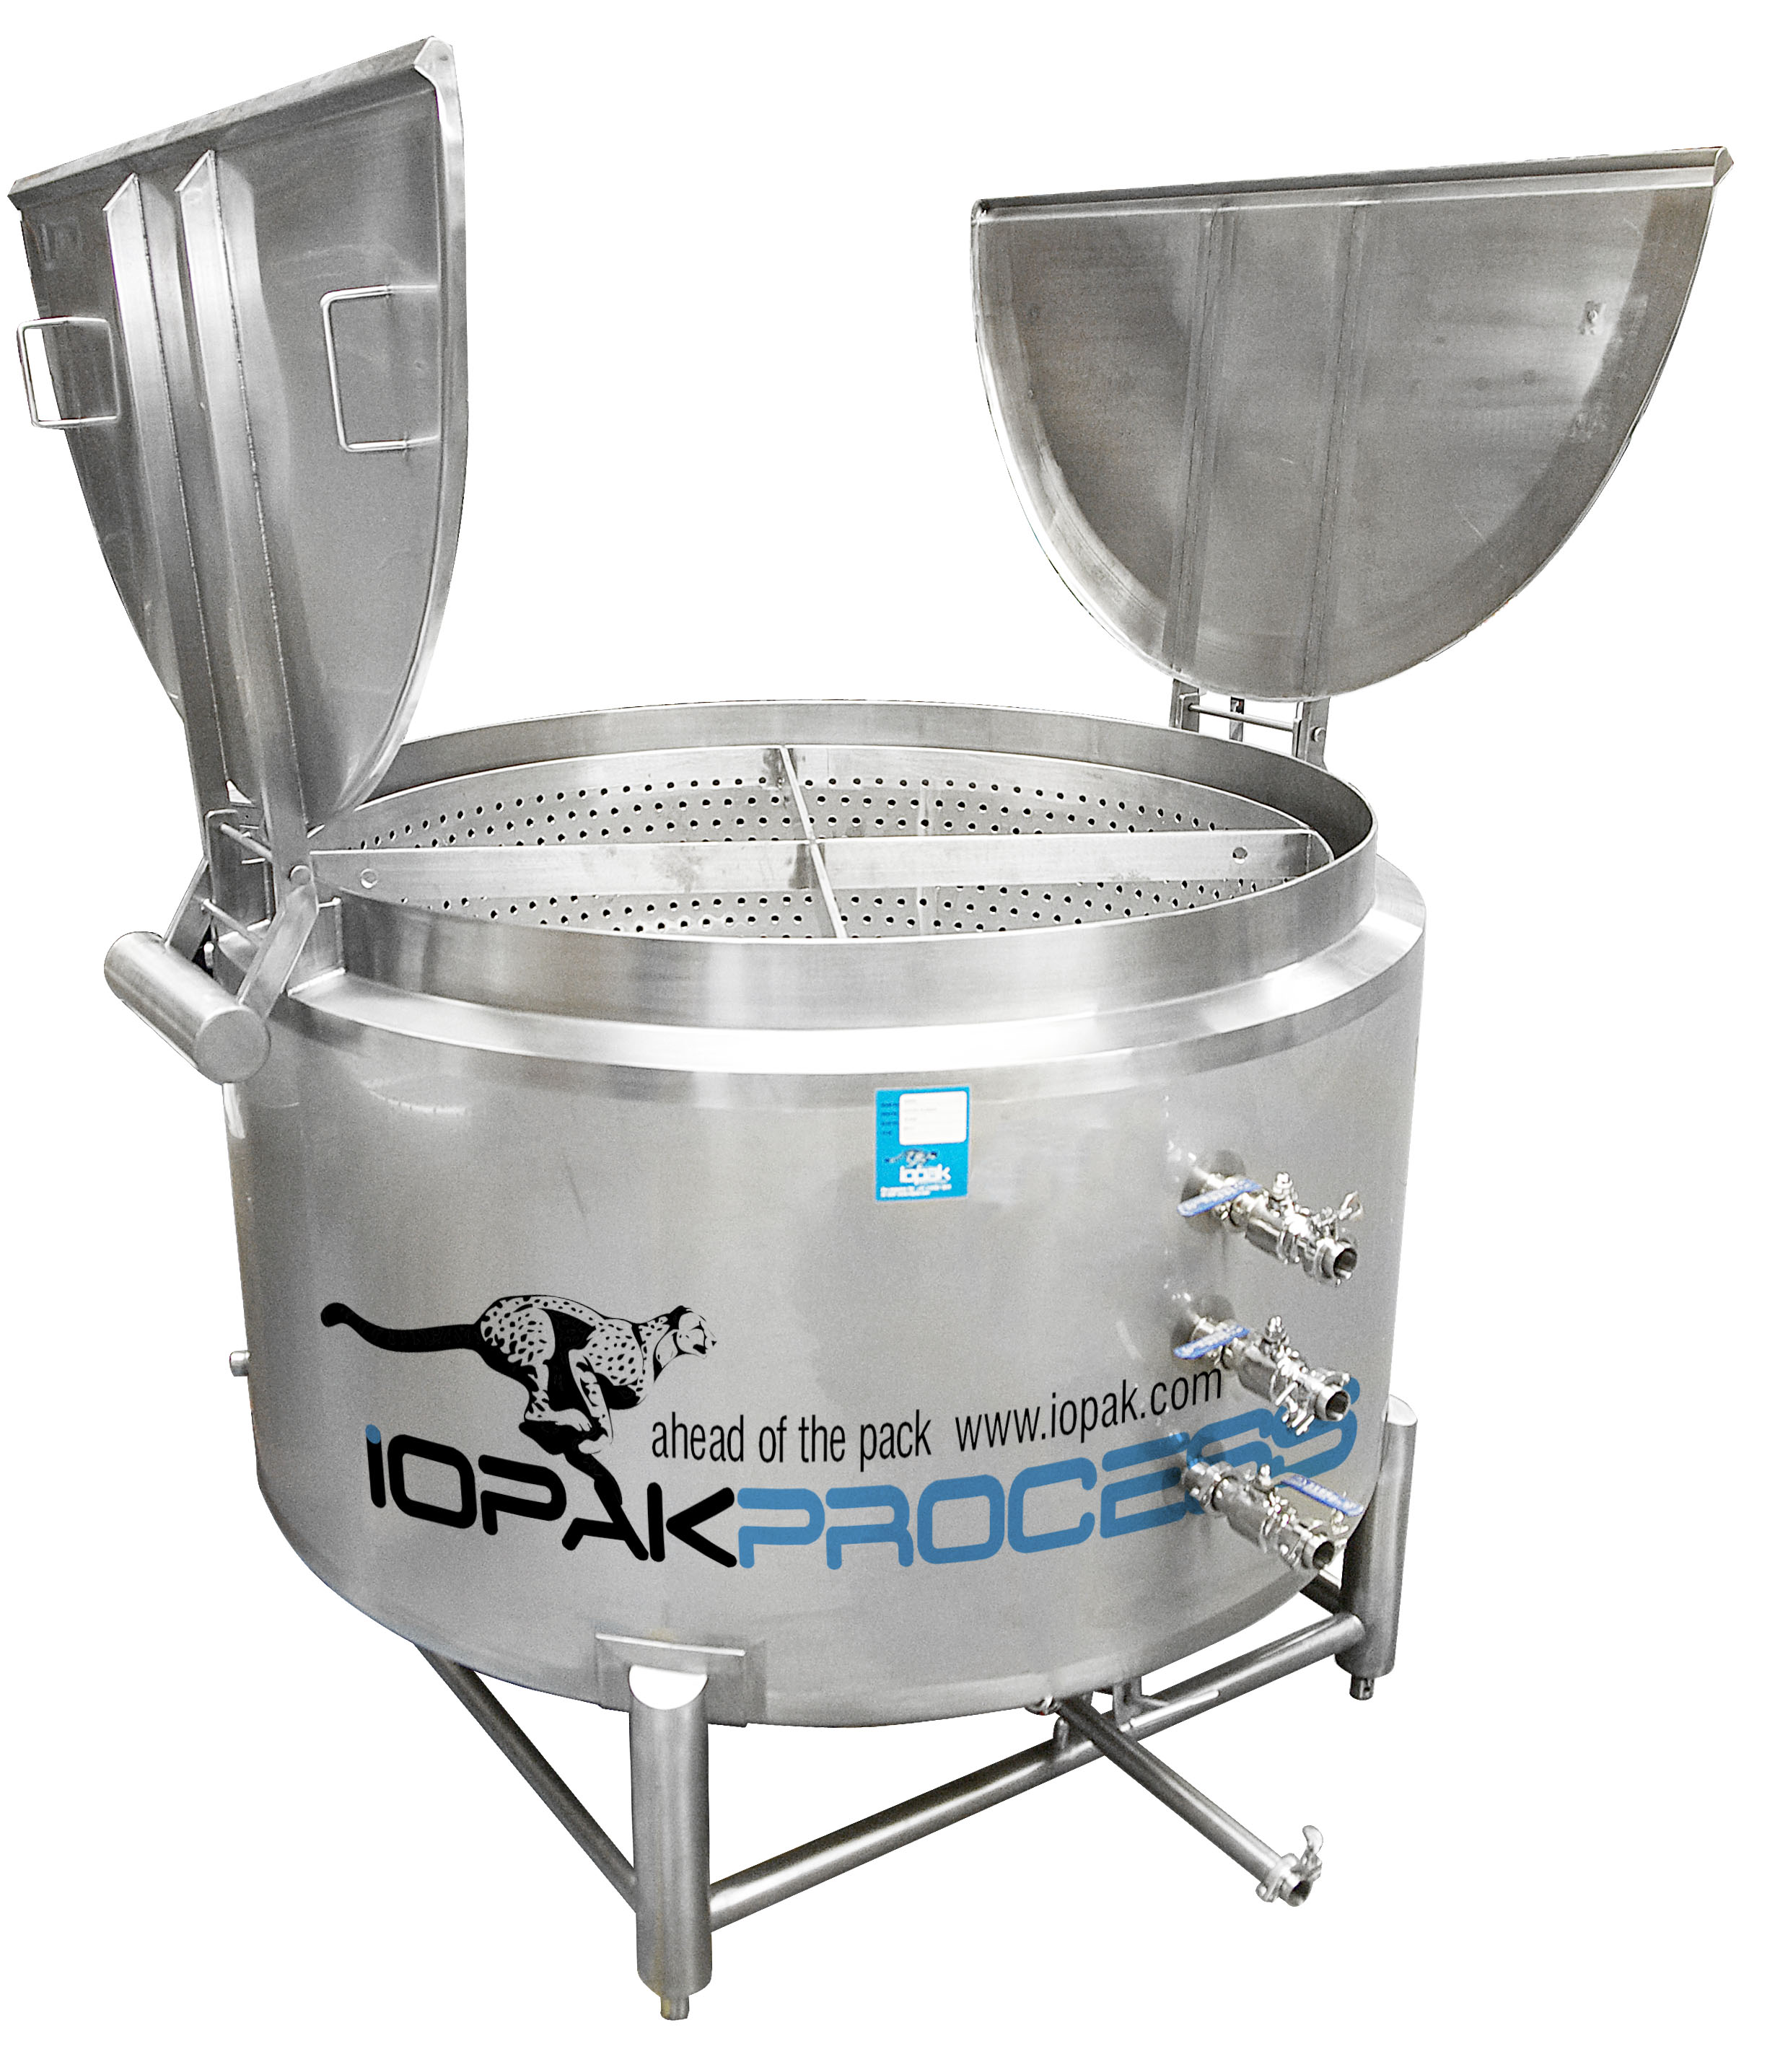 Cookers/Fryers - IOPAK Basket Batch 1000L Cooker. Cook! Quench! Chill!